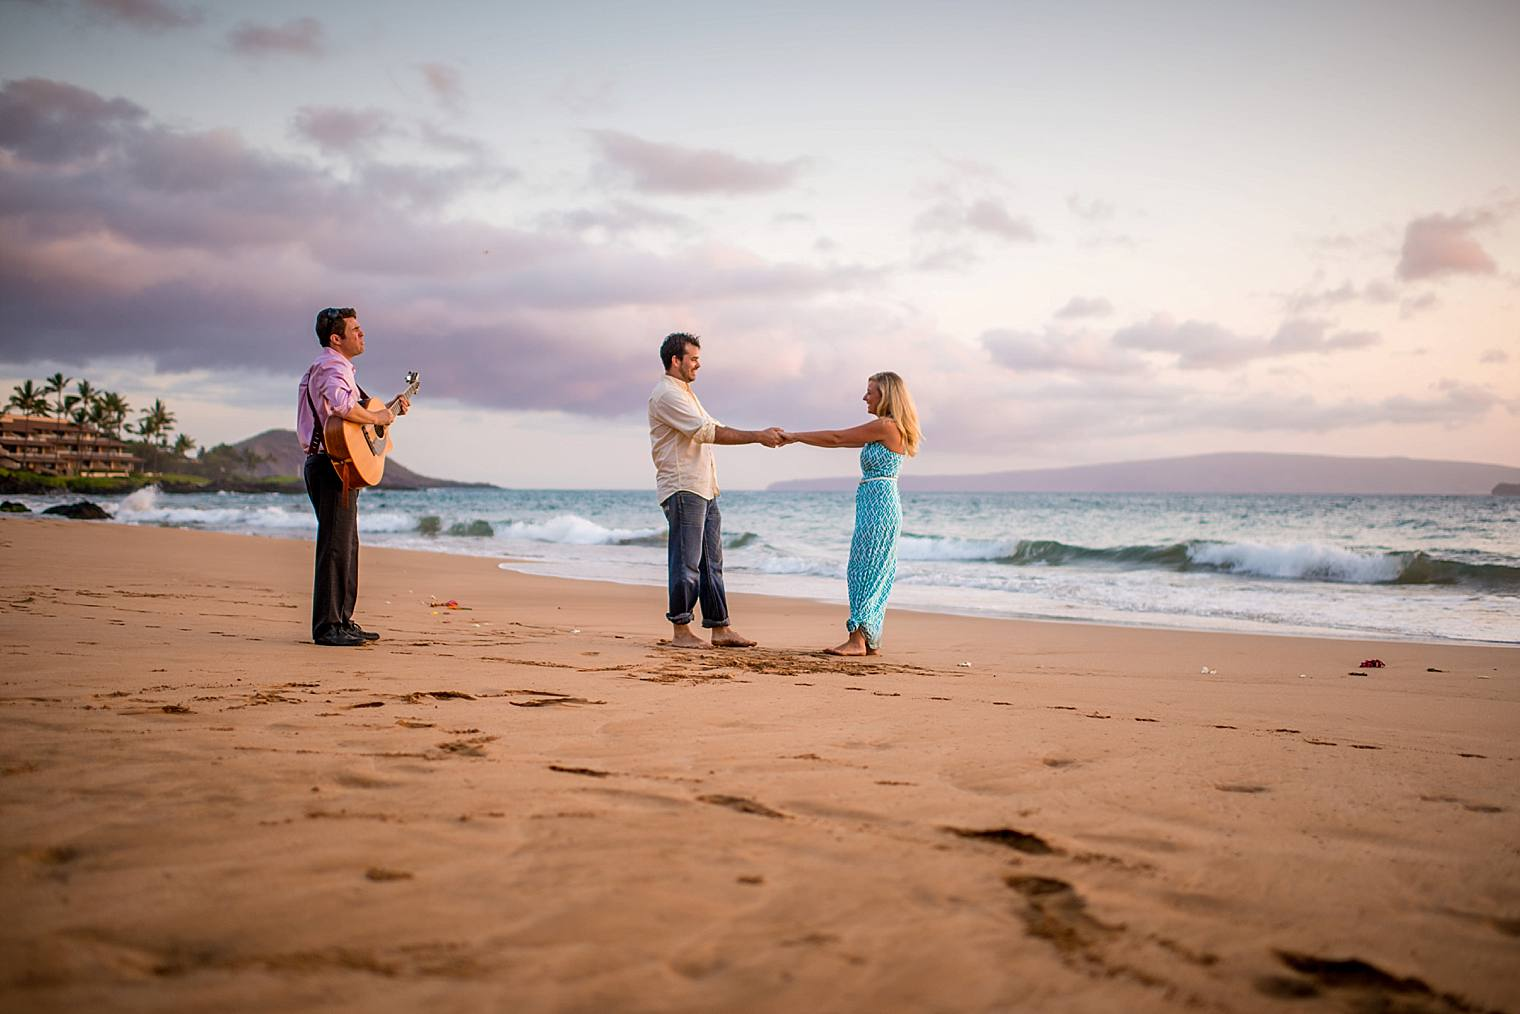 dancing on the beach with private musician